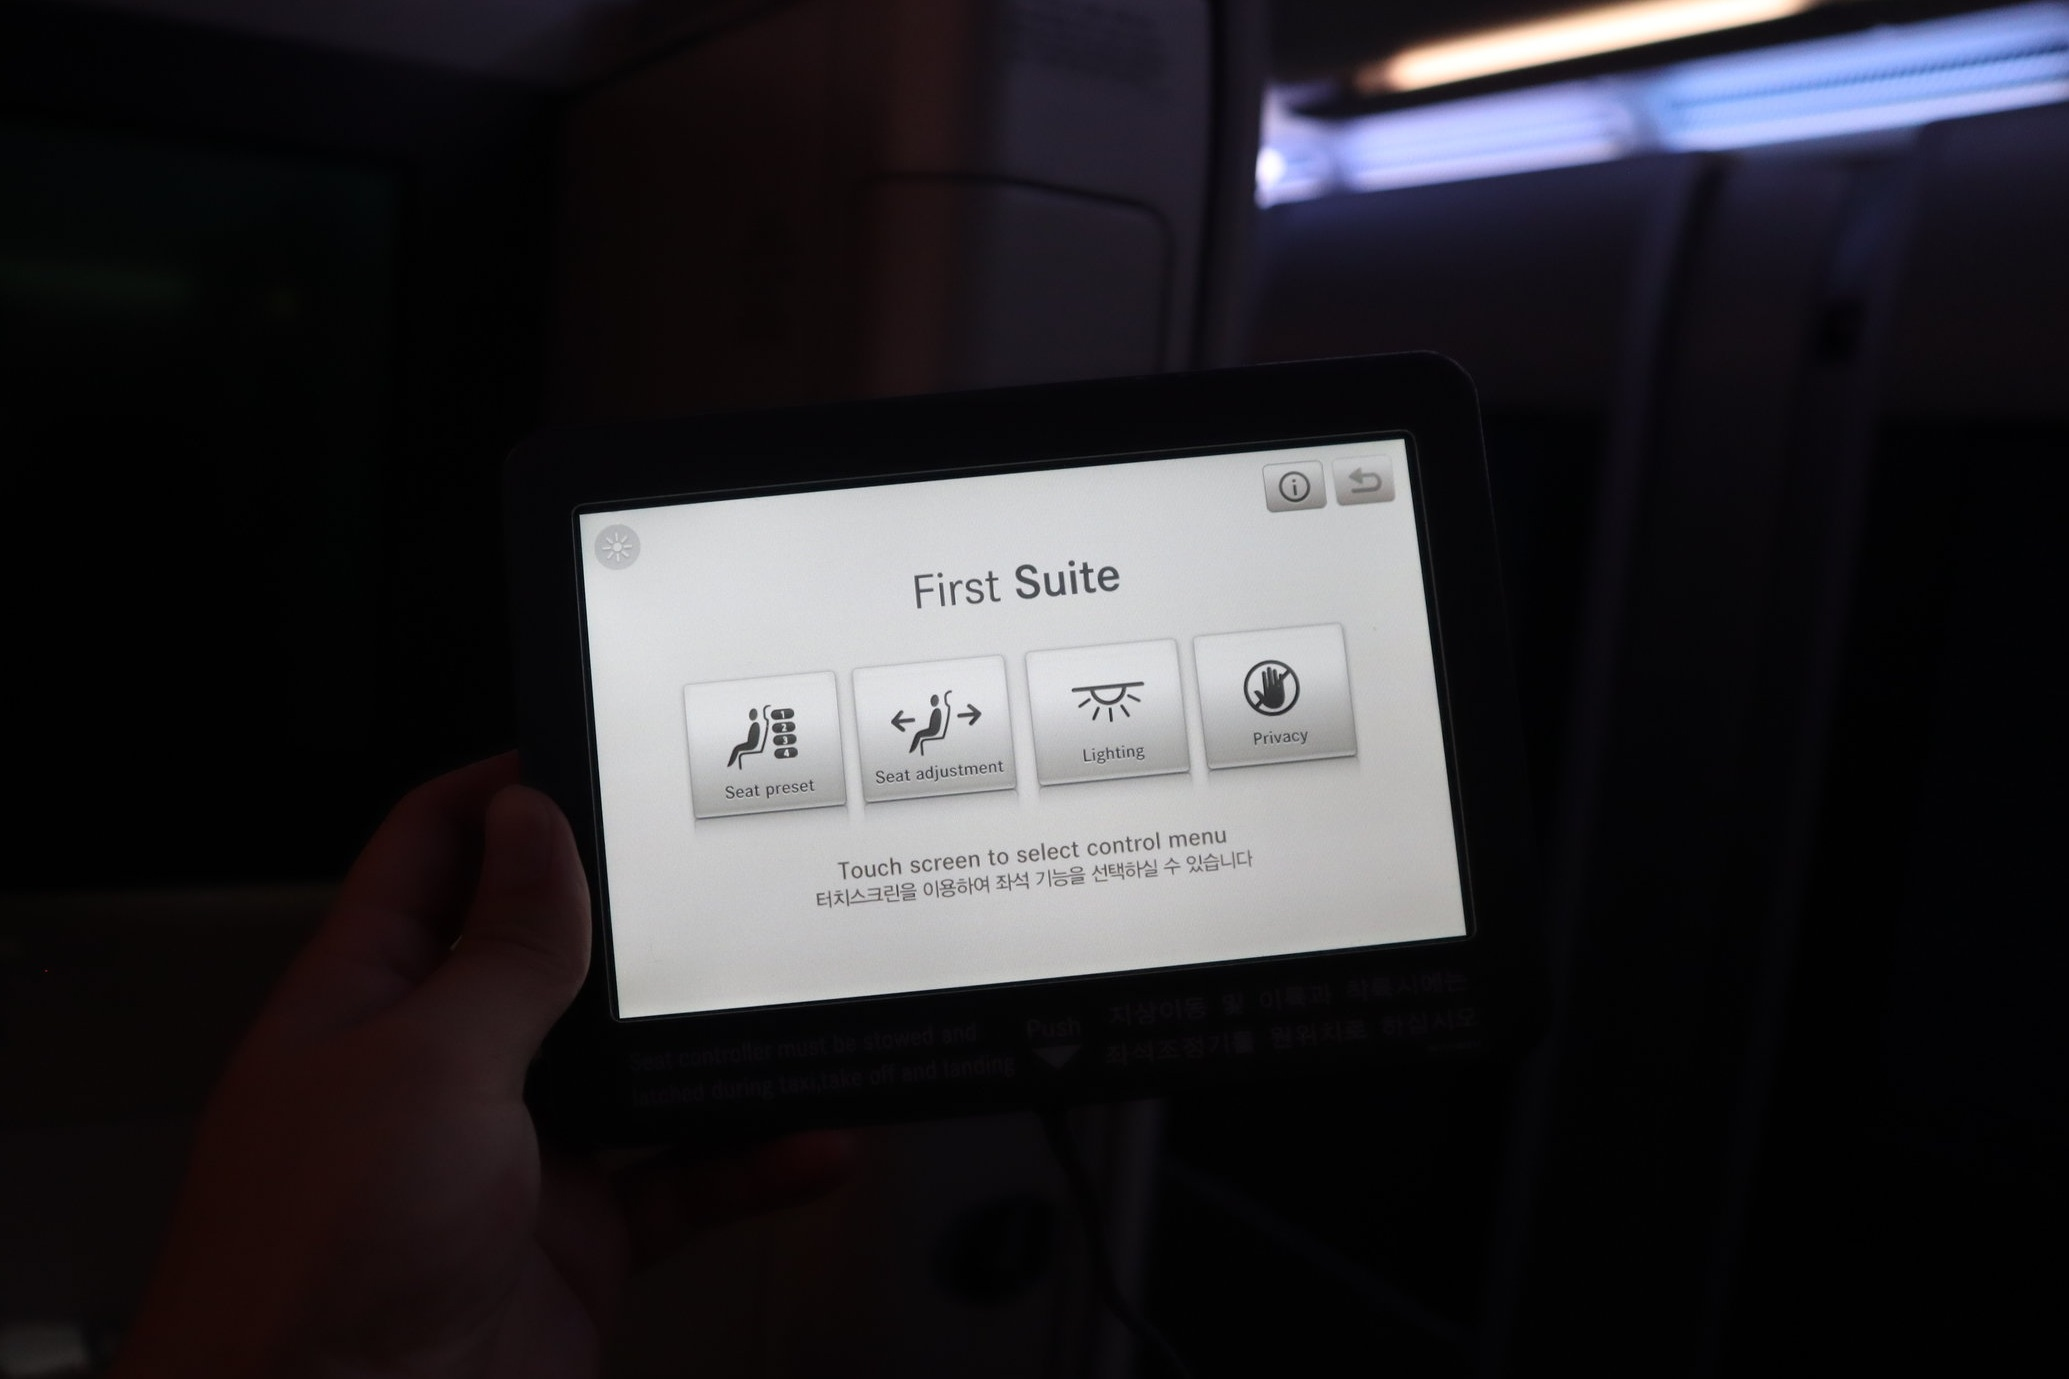 Asiana Airlines First Class – Seat controller tablet